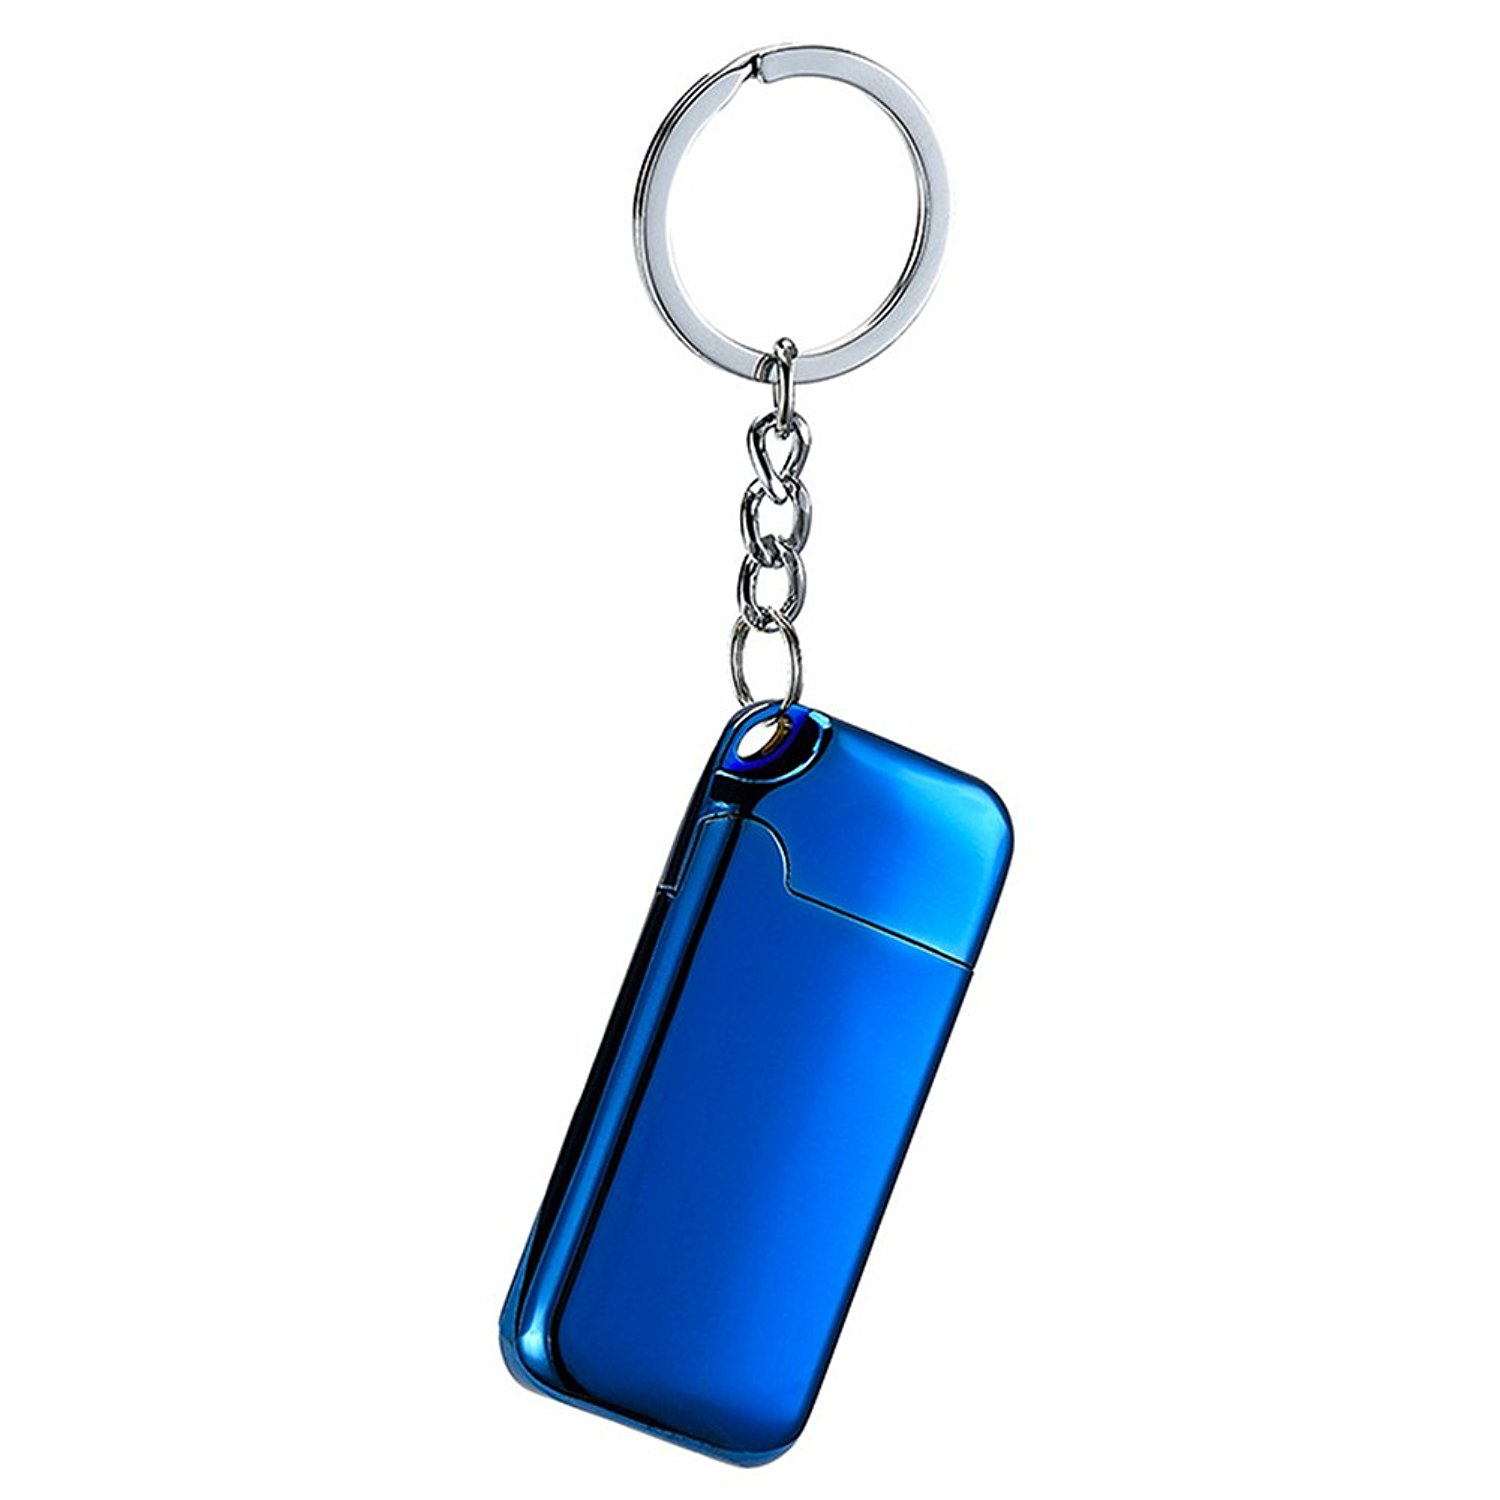 Novelty Keychain with Lighter,Moonwbak Heating Wire Cigar Lighter USB Rechargeable Electronic Tungsten Wire Cigarette Lighter with Keychain Pendant Flameless Wind-proof